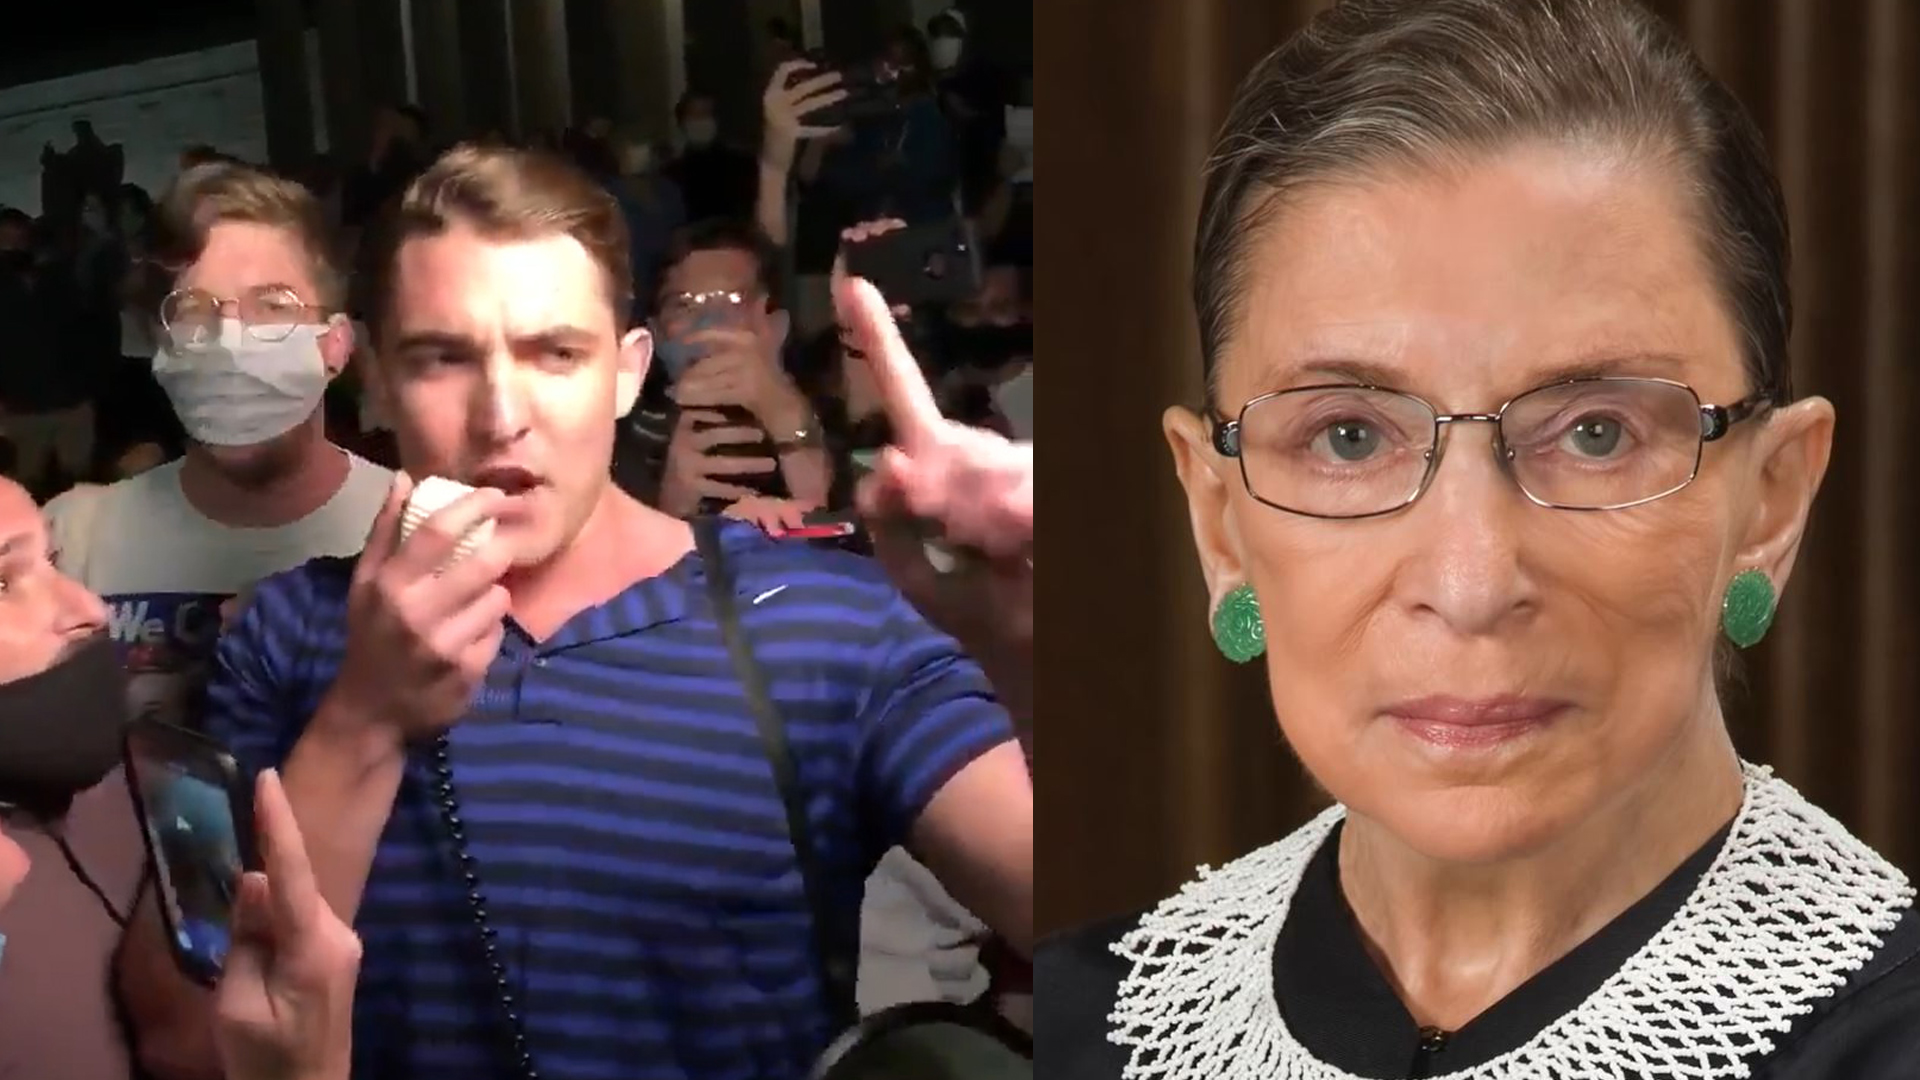 Conspiracy Theorist Jacob Wohl Crashes RBG Vigil